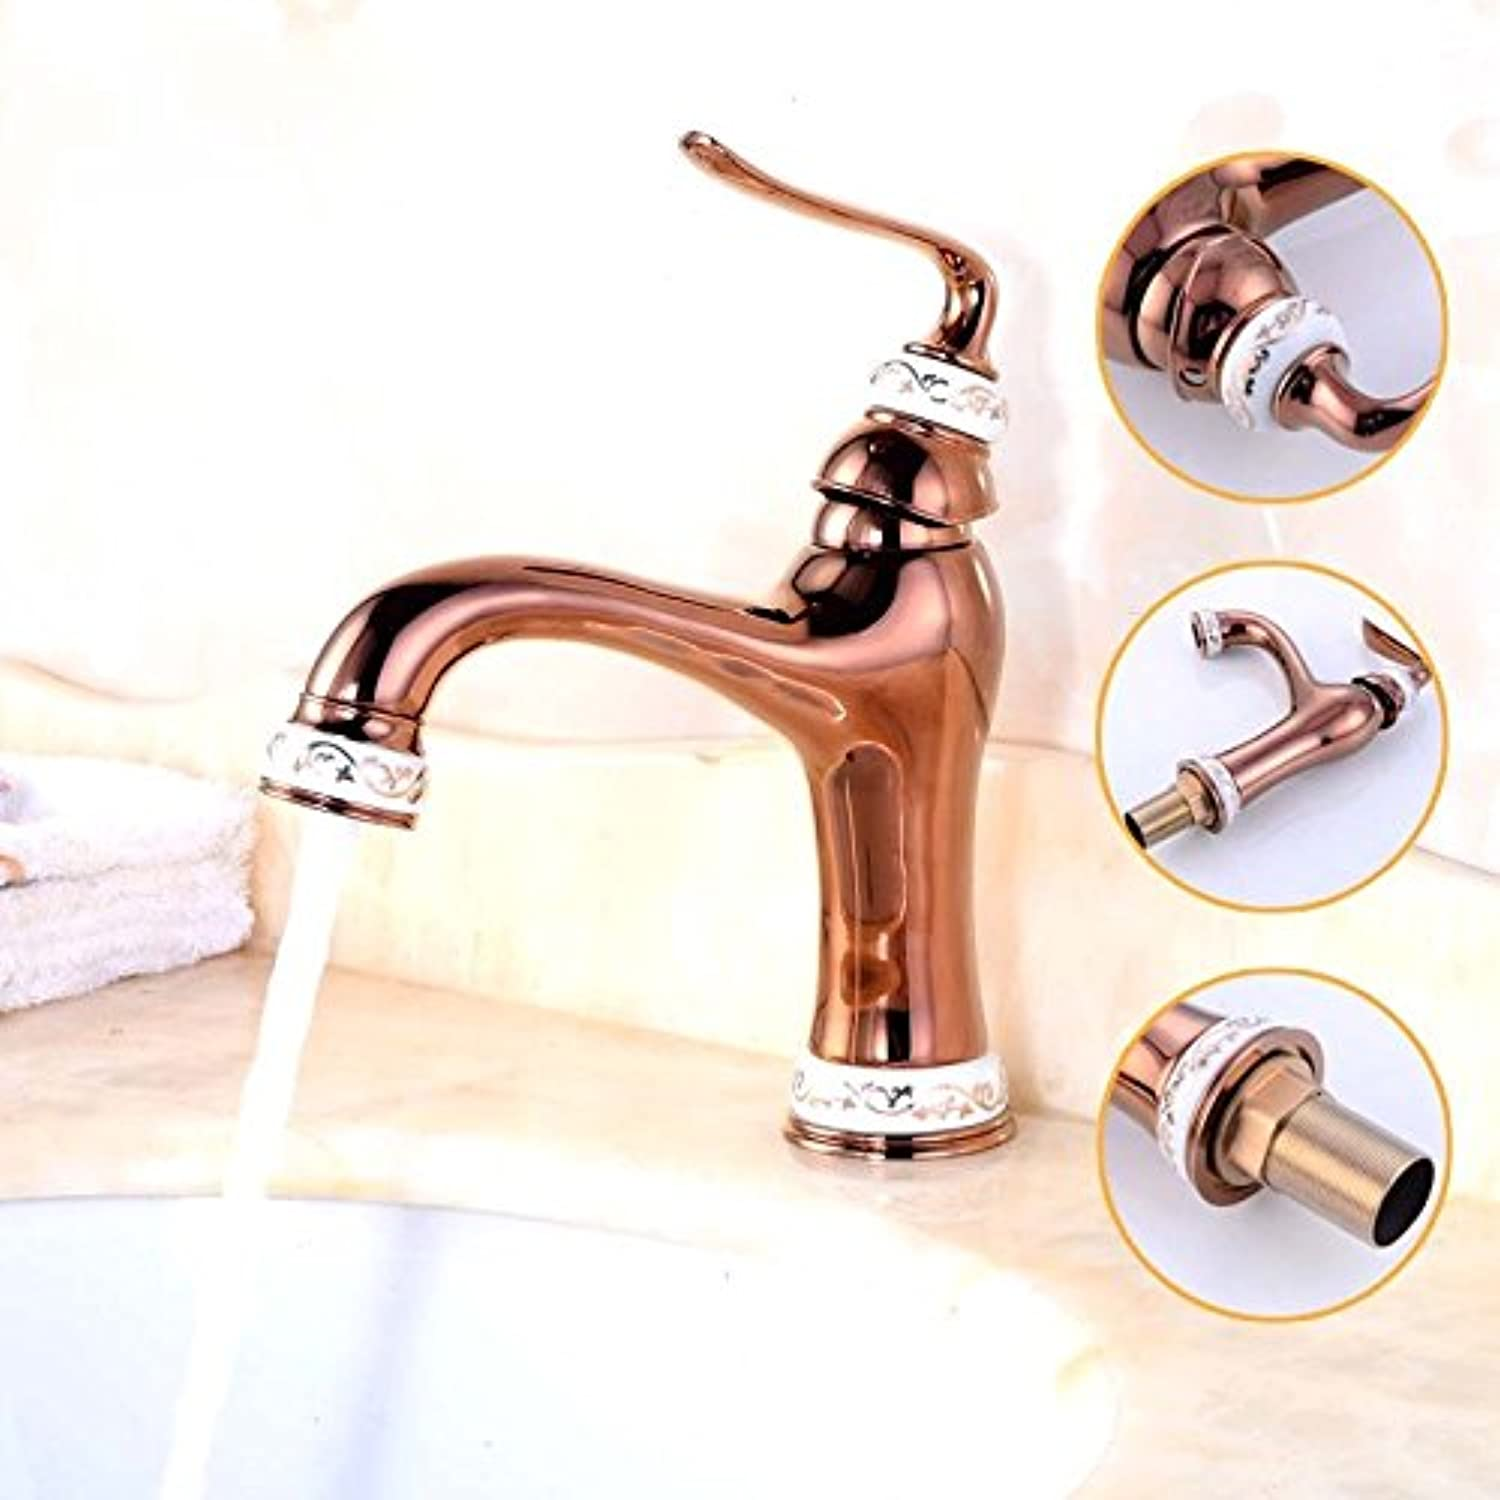 MIAORUI European style copper pan basin faucet Antique plating gold jade mixed water faucet bluee and white porcelain basin hot and cold water faucet,玫瑰金花纹陶瓷